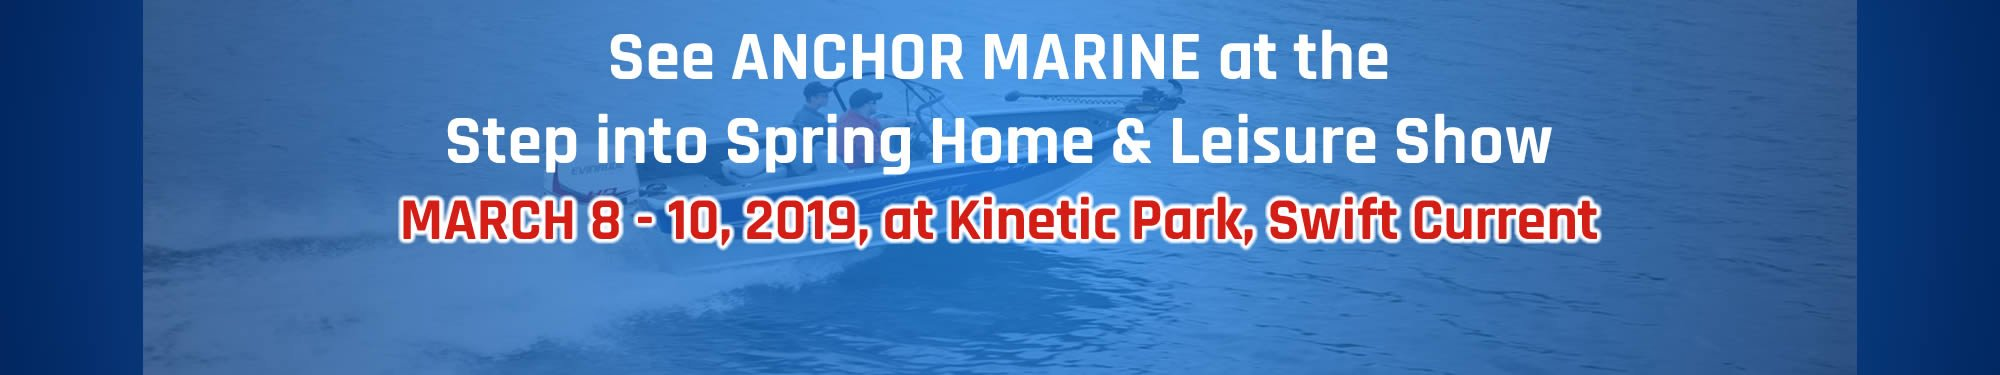 See Anchor Marine at Step into Spring Leisure Show